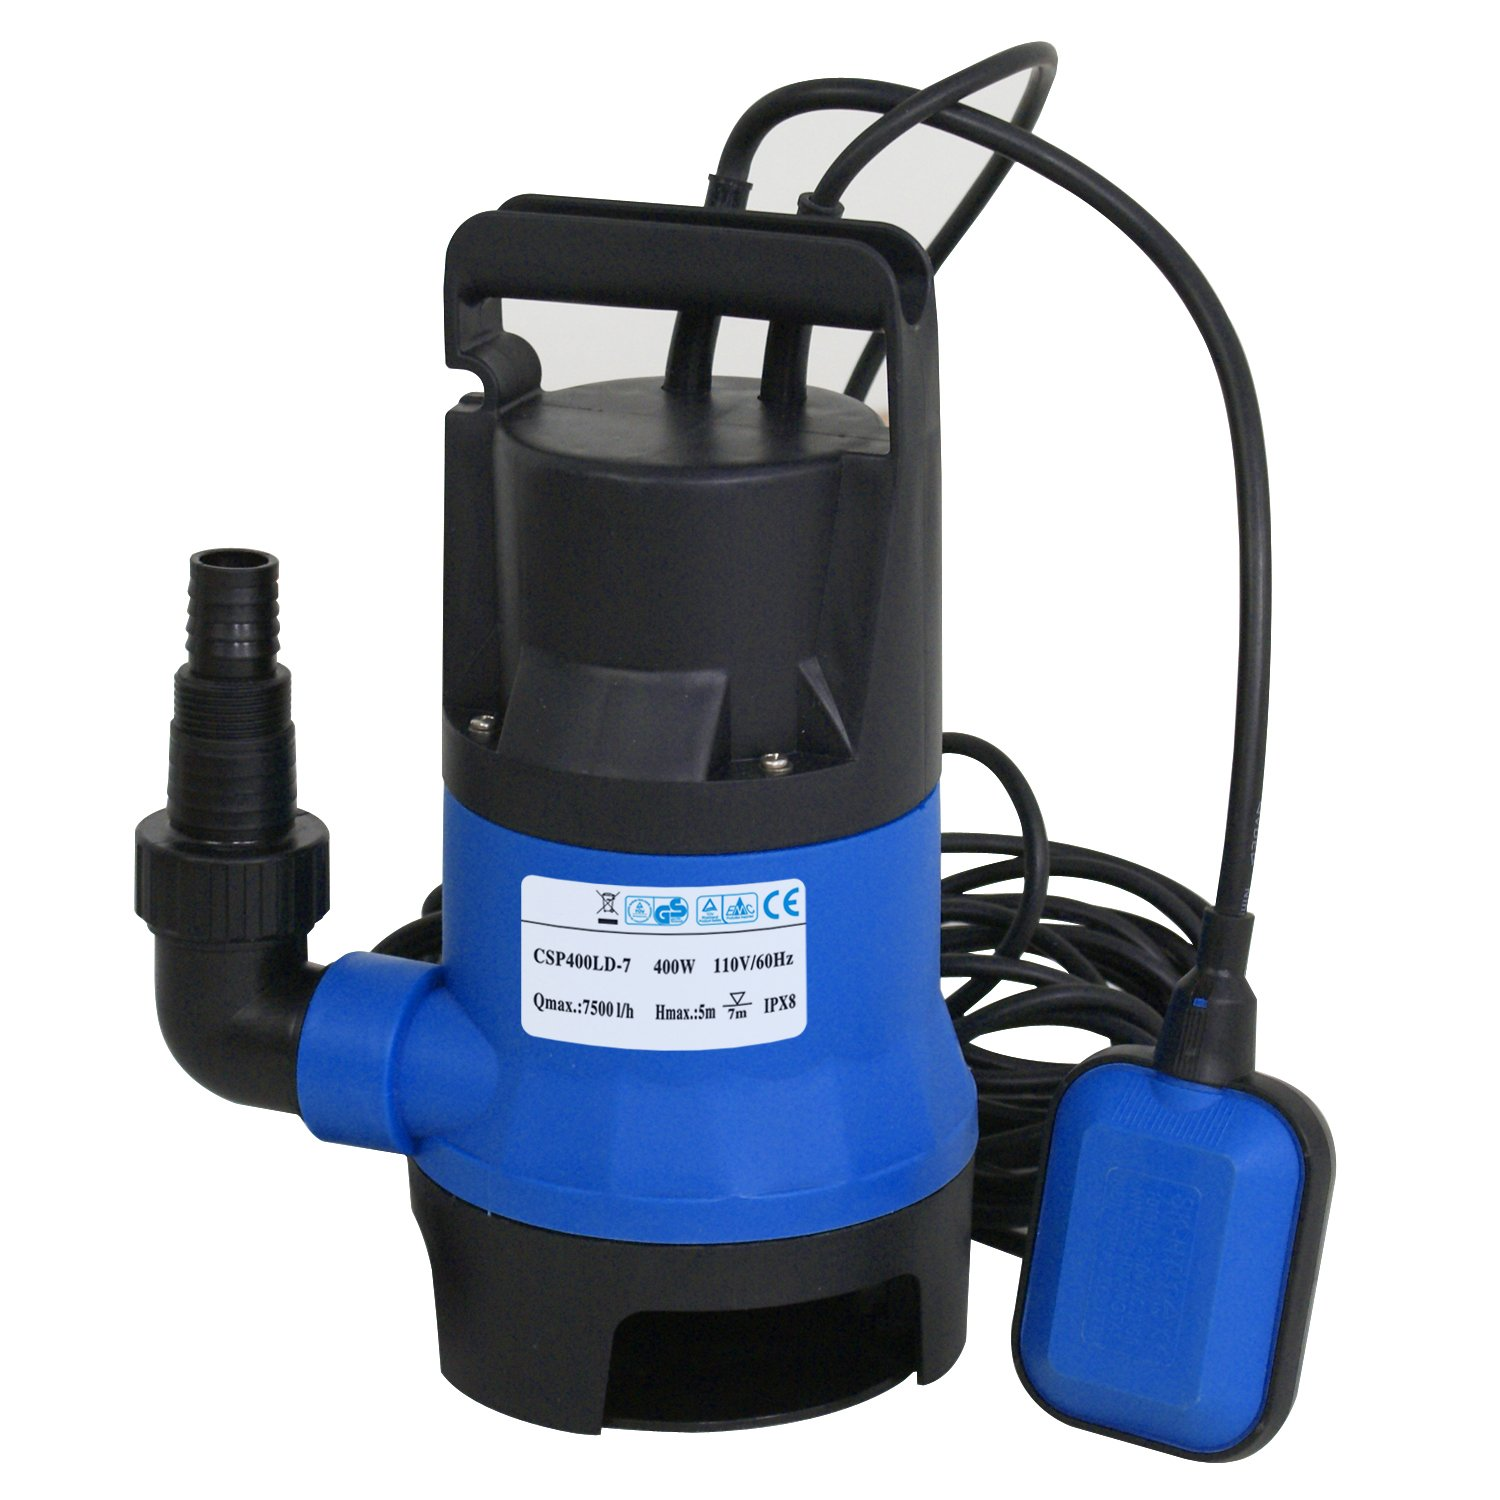 1/2 HP Submersible Sump Pump Clean/Dirty Water Pump 400W 2115GPH W/ 25ft Cable and Float Switch Pool Pond Flood Drain